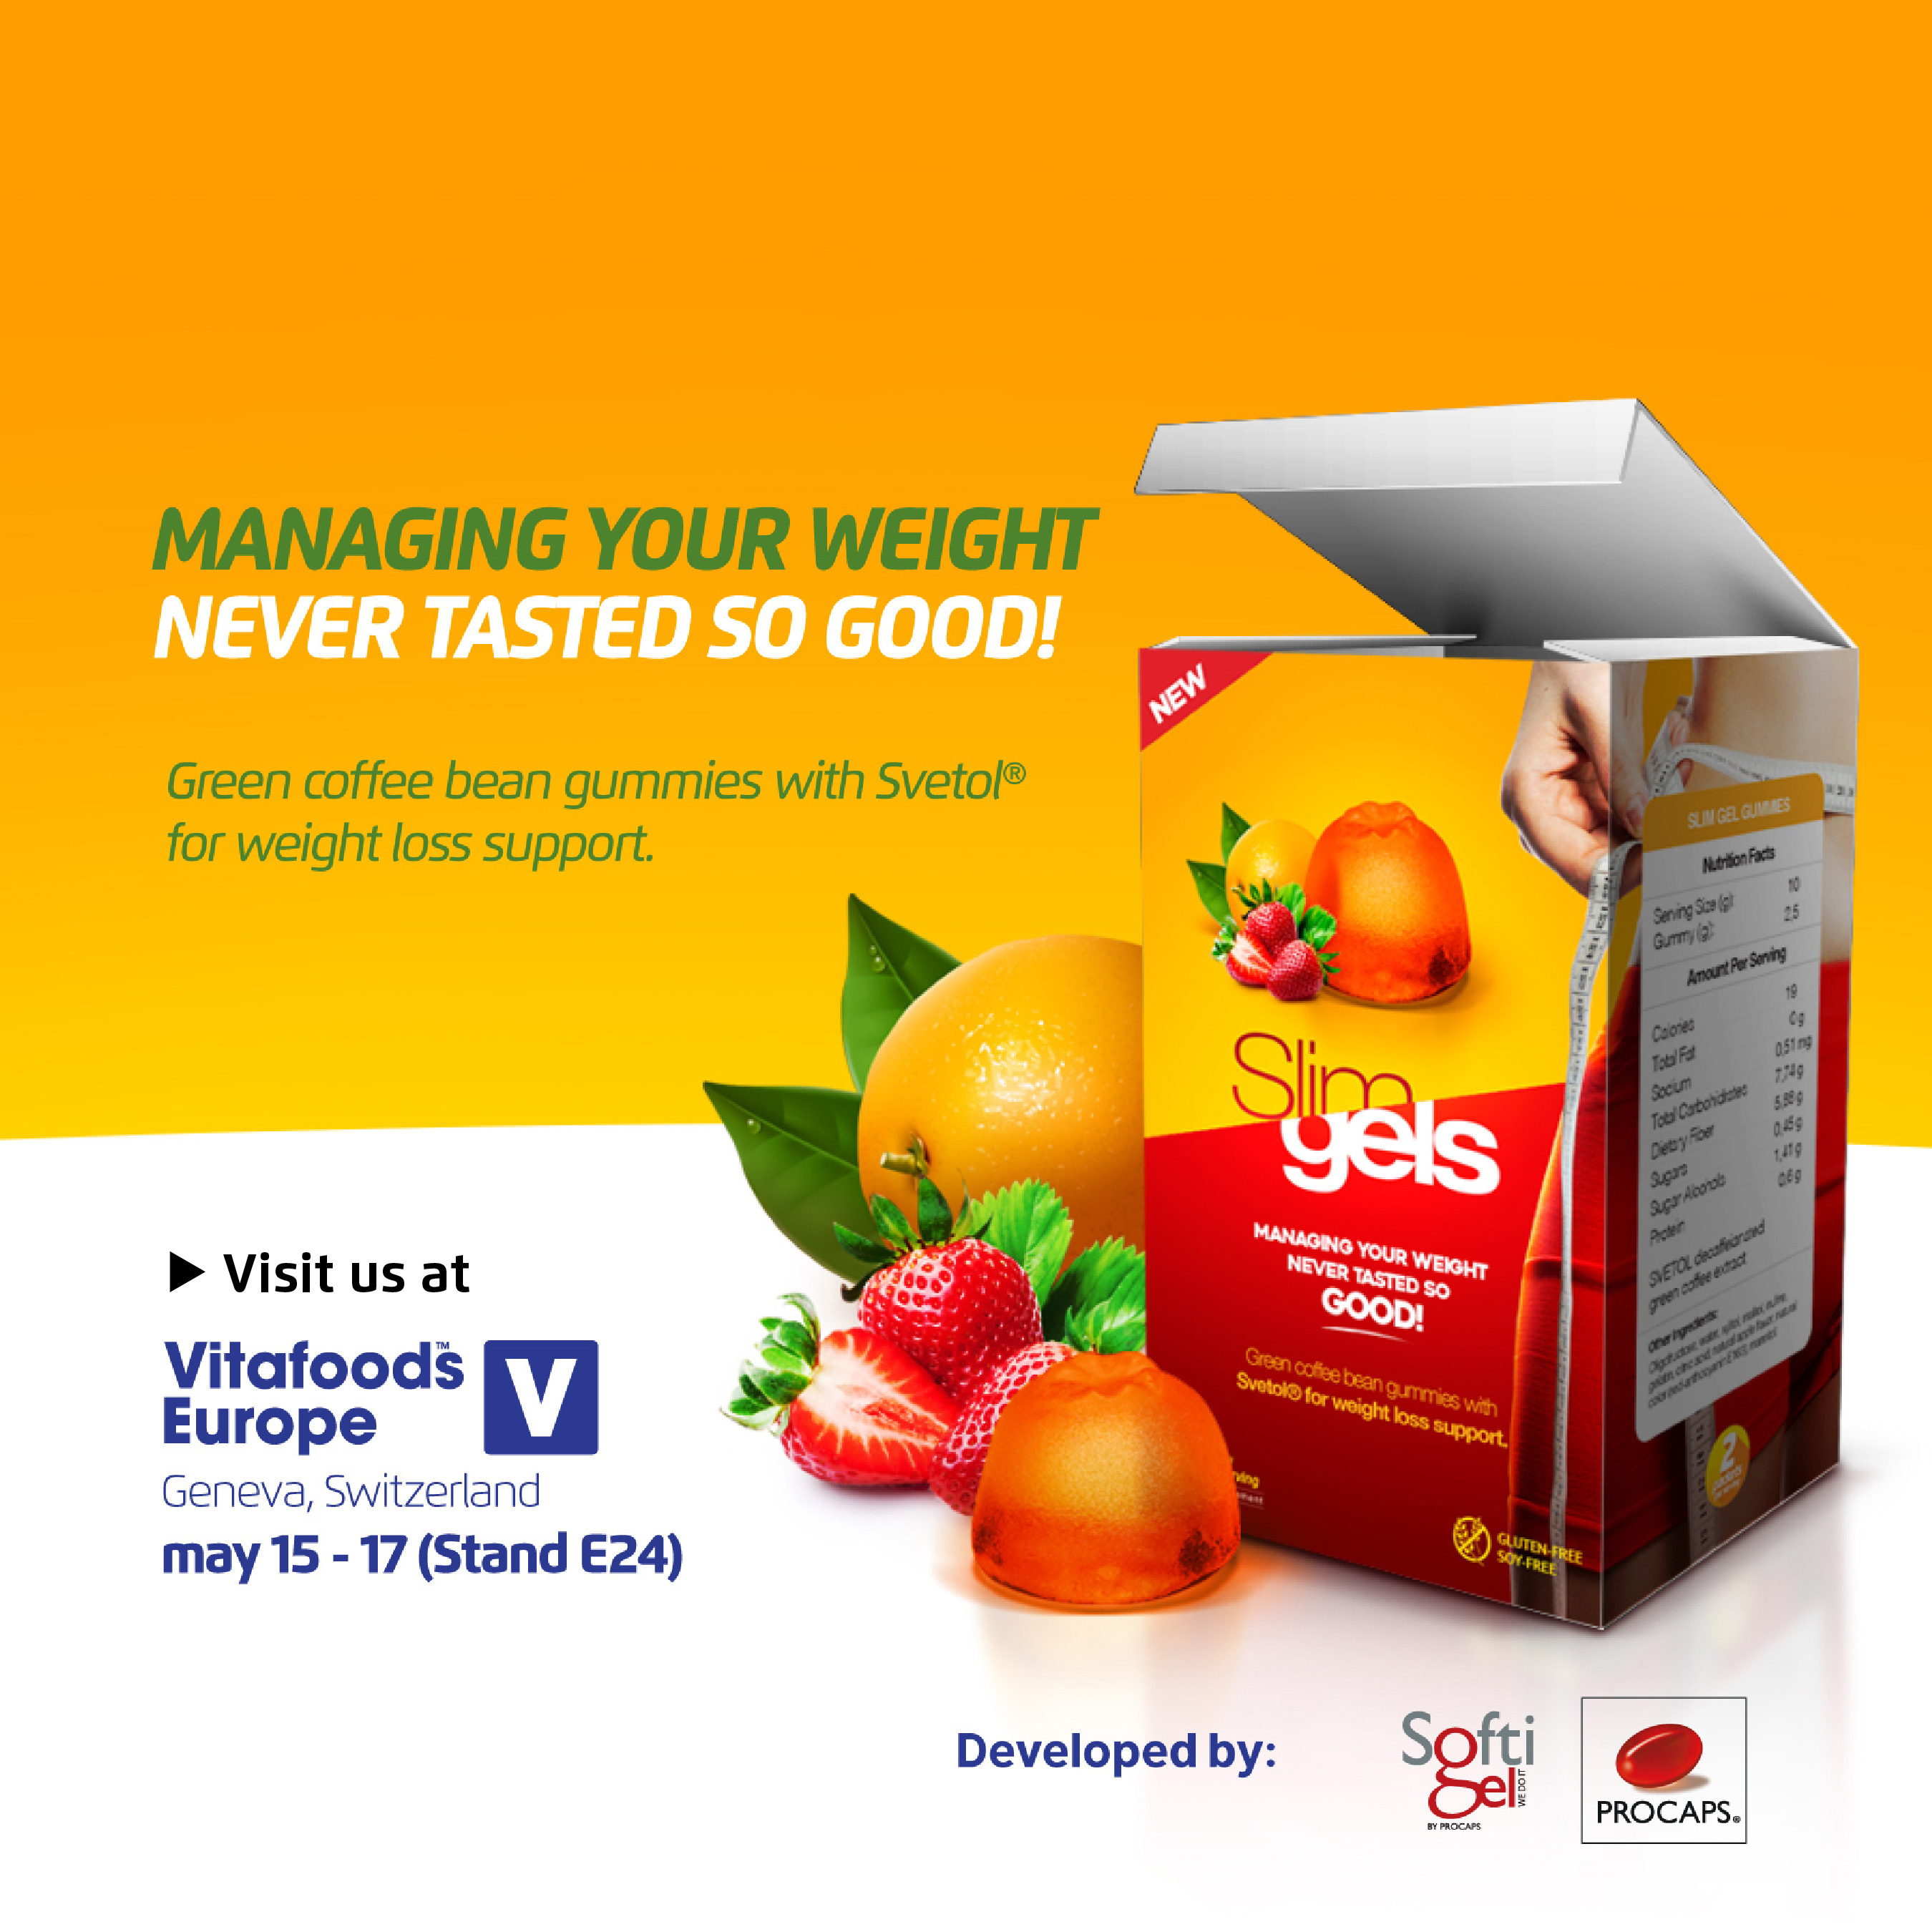 Managing your weight never tasted so good! New weight loss gummies,Visit us at booth E24 at Vitafoods 2018